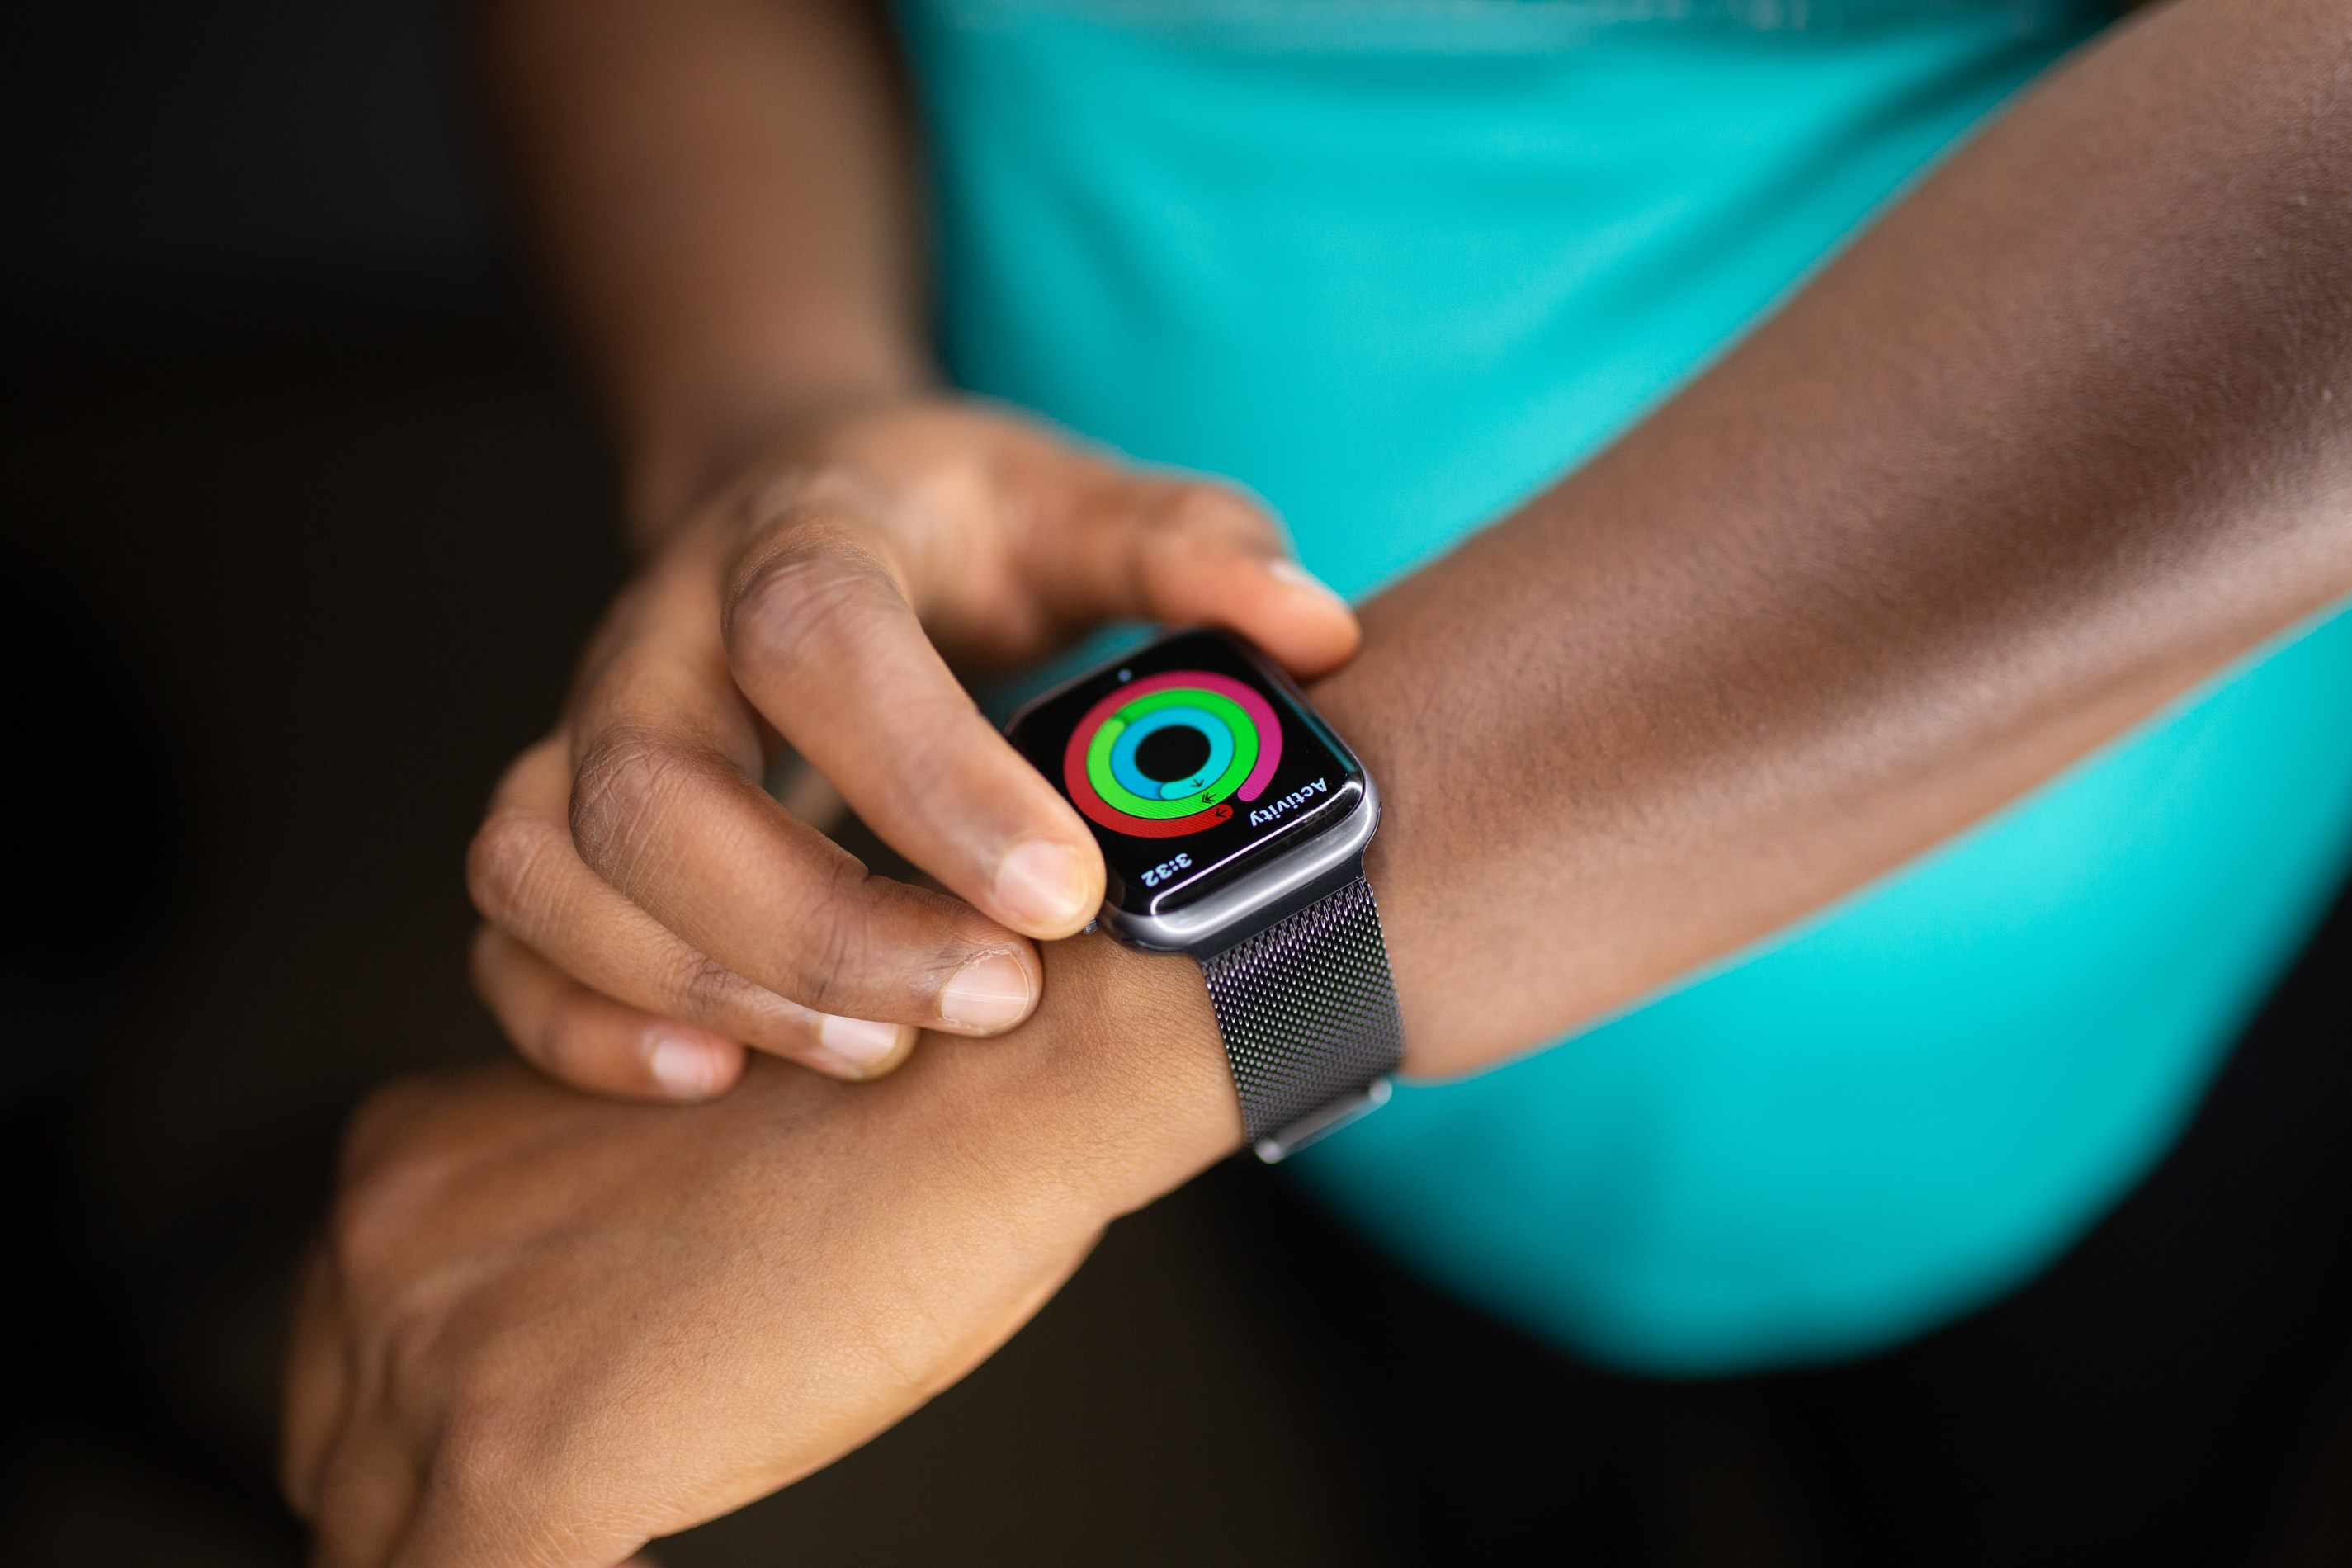 person wearing an Apple Watch and checking their activity rings